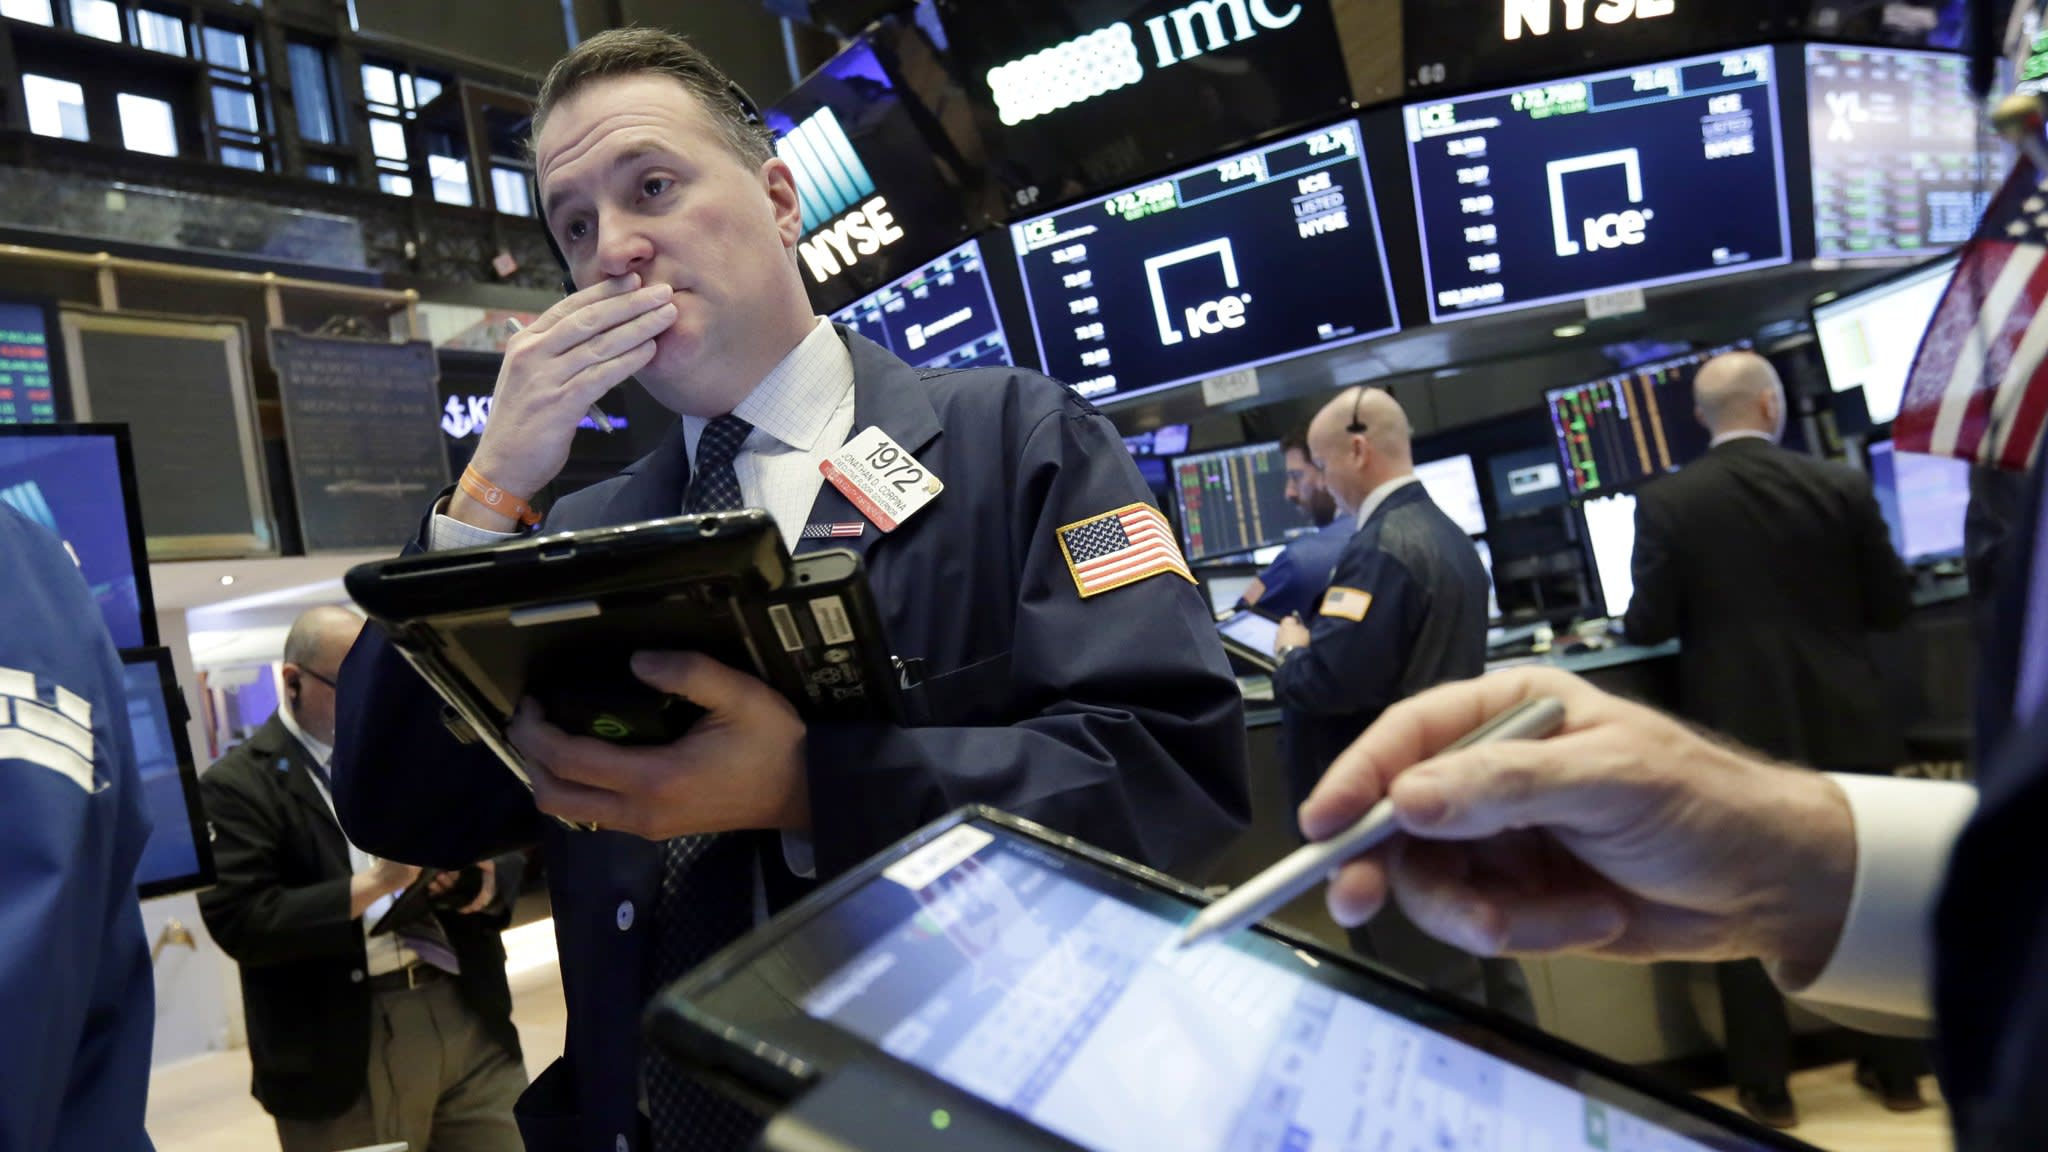 Measure of US borrowing costs flashes amber